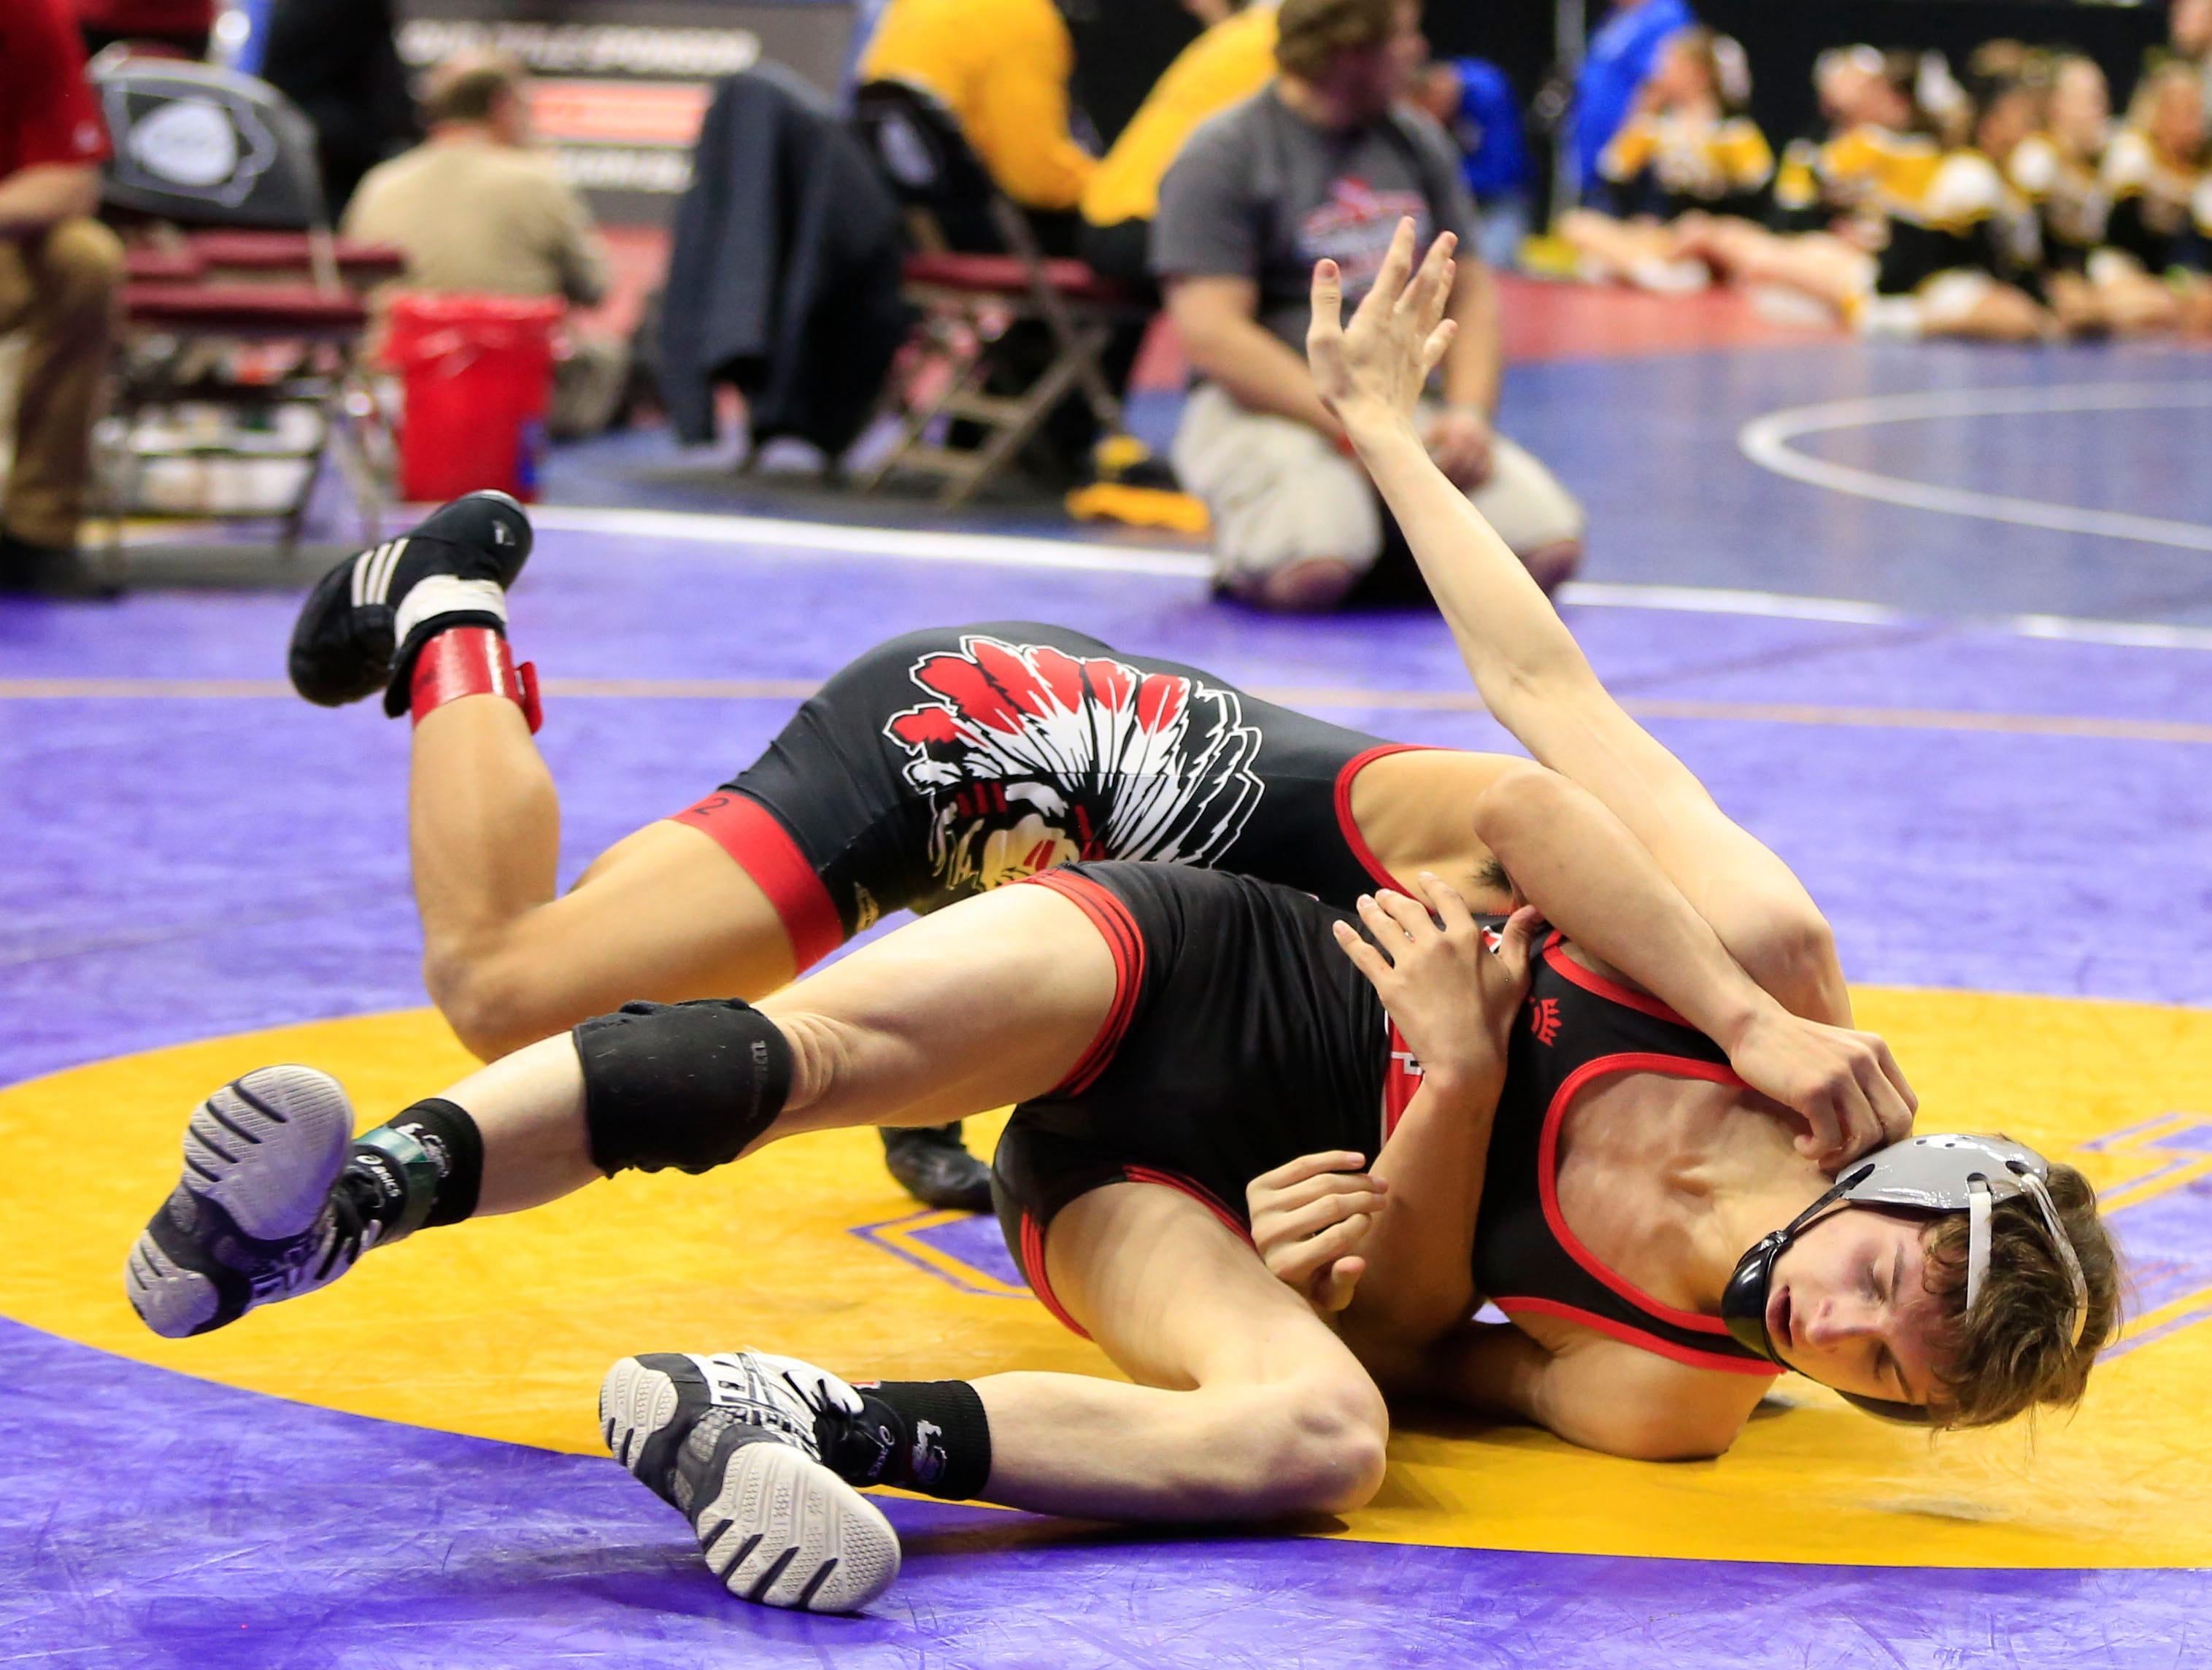 Nathaniel Genobana of Centerville defeats Jason Peta of Estherville-Lincoln Central during a 120 Lb 2A quarterfinal match at the state wrestling tournament Friday, Feb. 15, 2019.